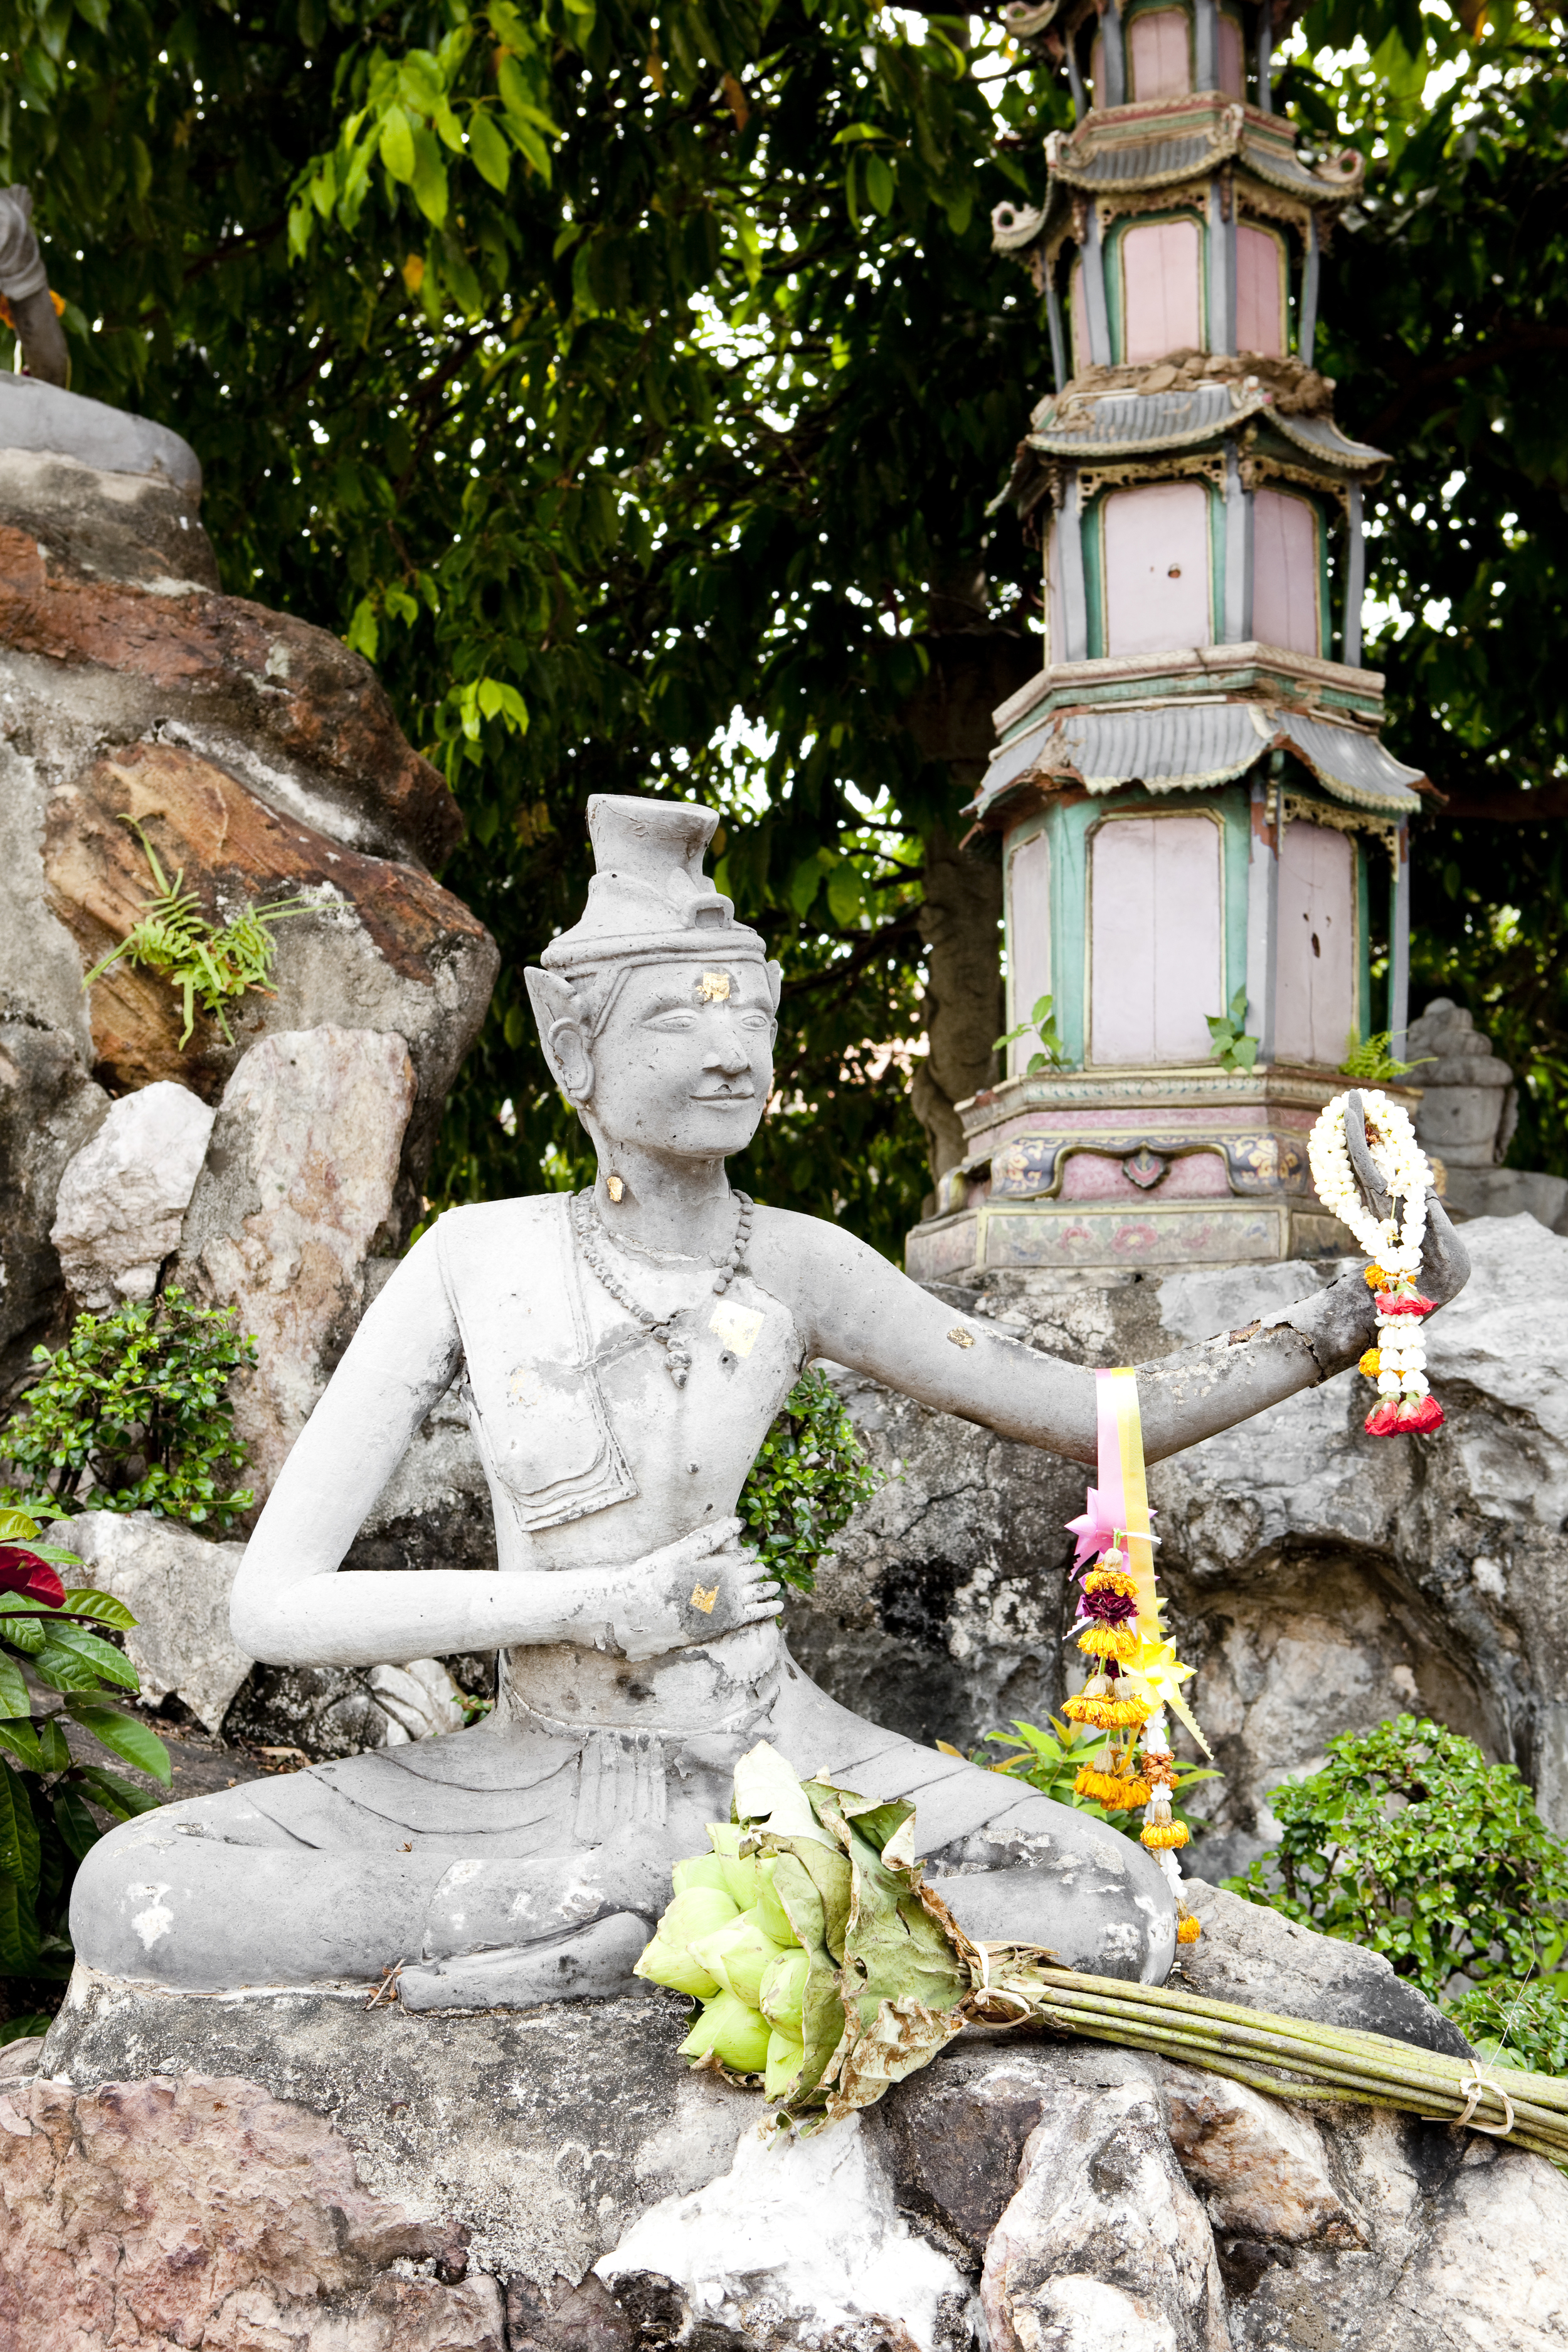 Thai statue of hermit yogi practicing Reusi Dat Ton, an ancient form of therapeutic yoga that aids in meditation practice